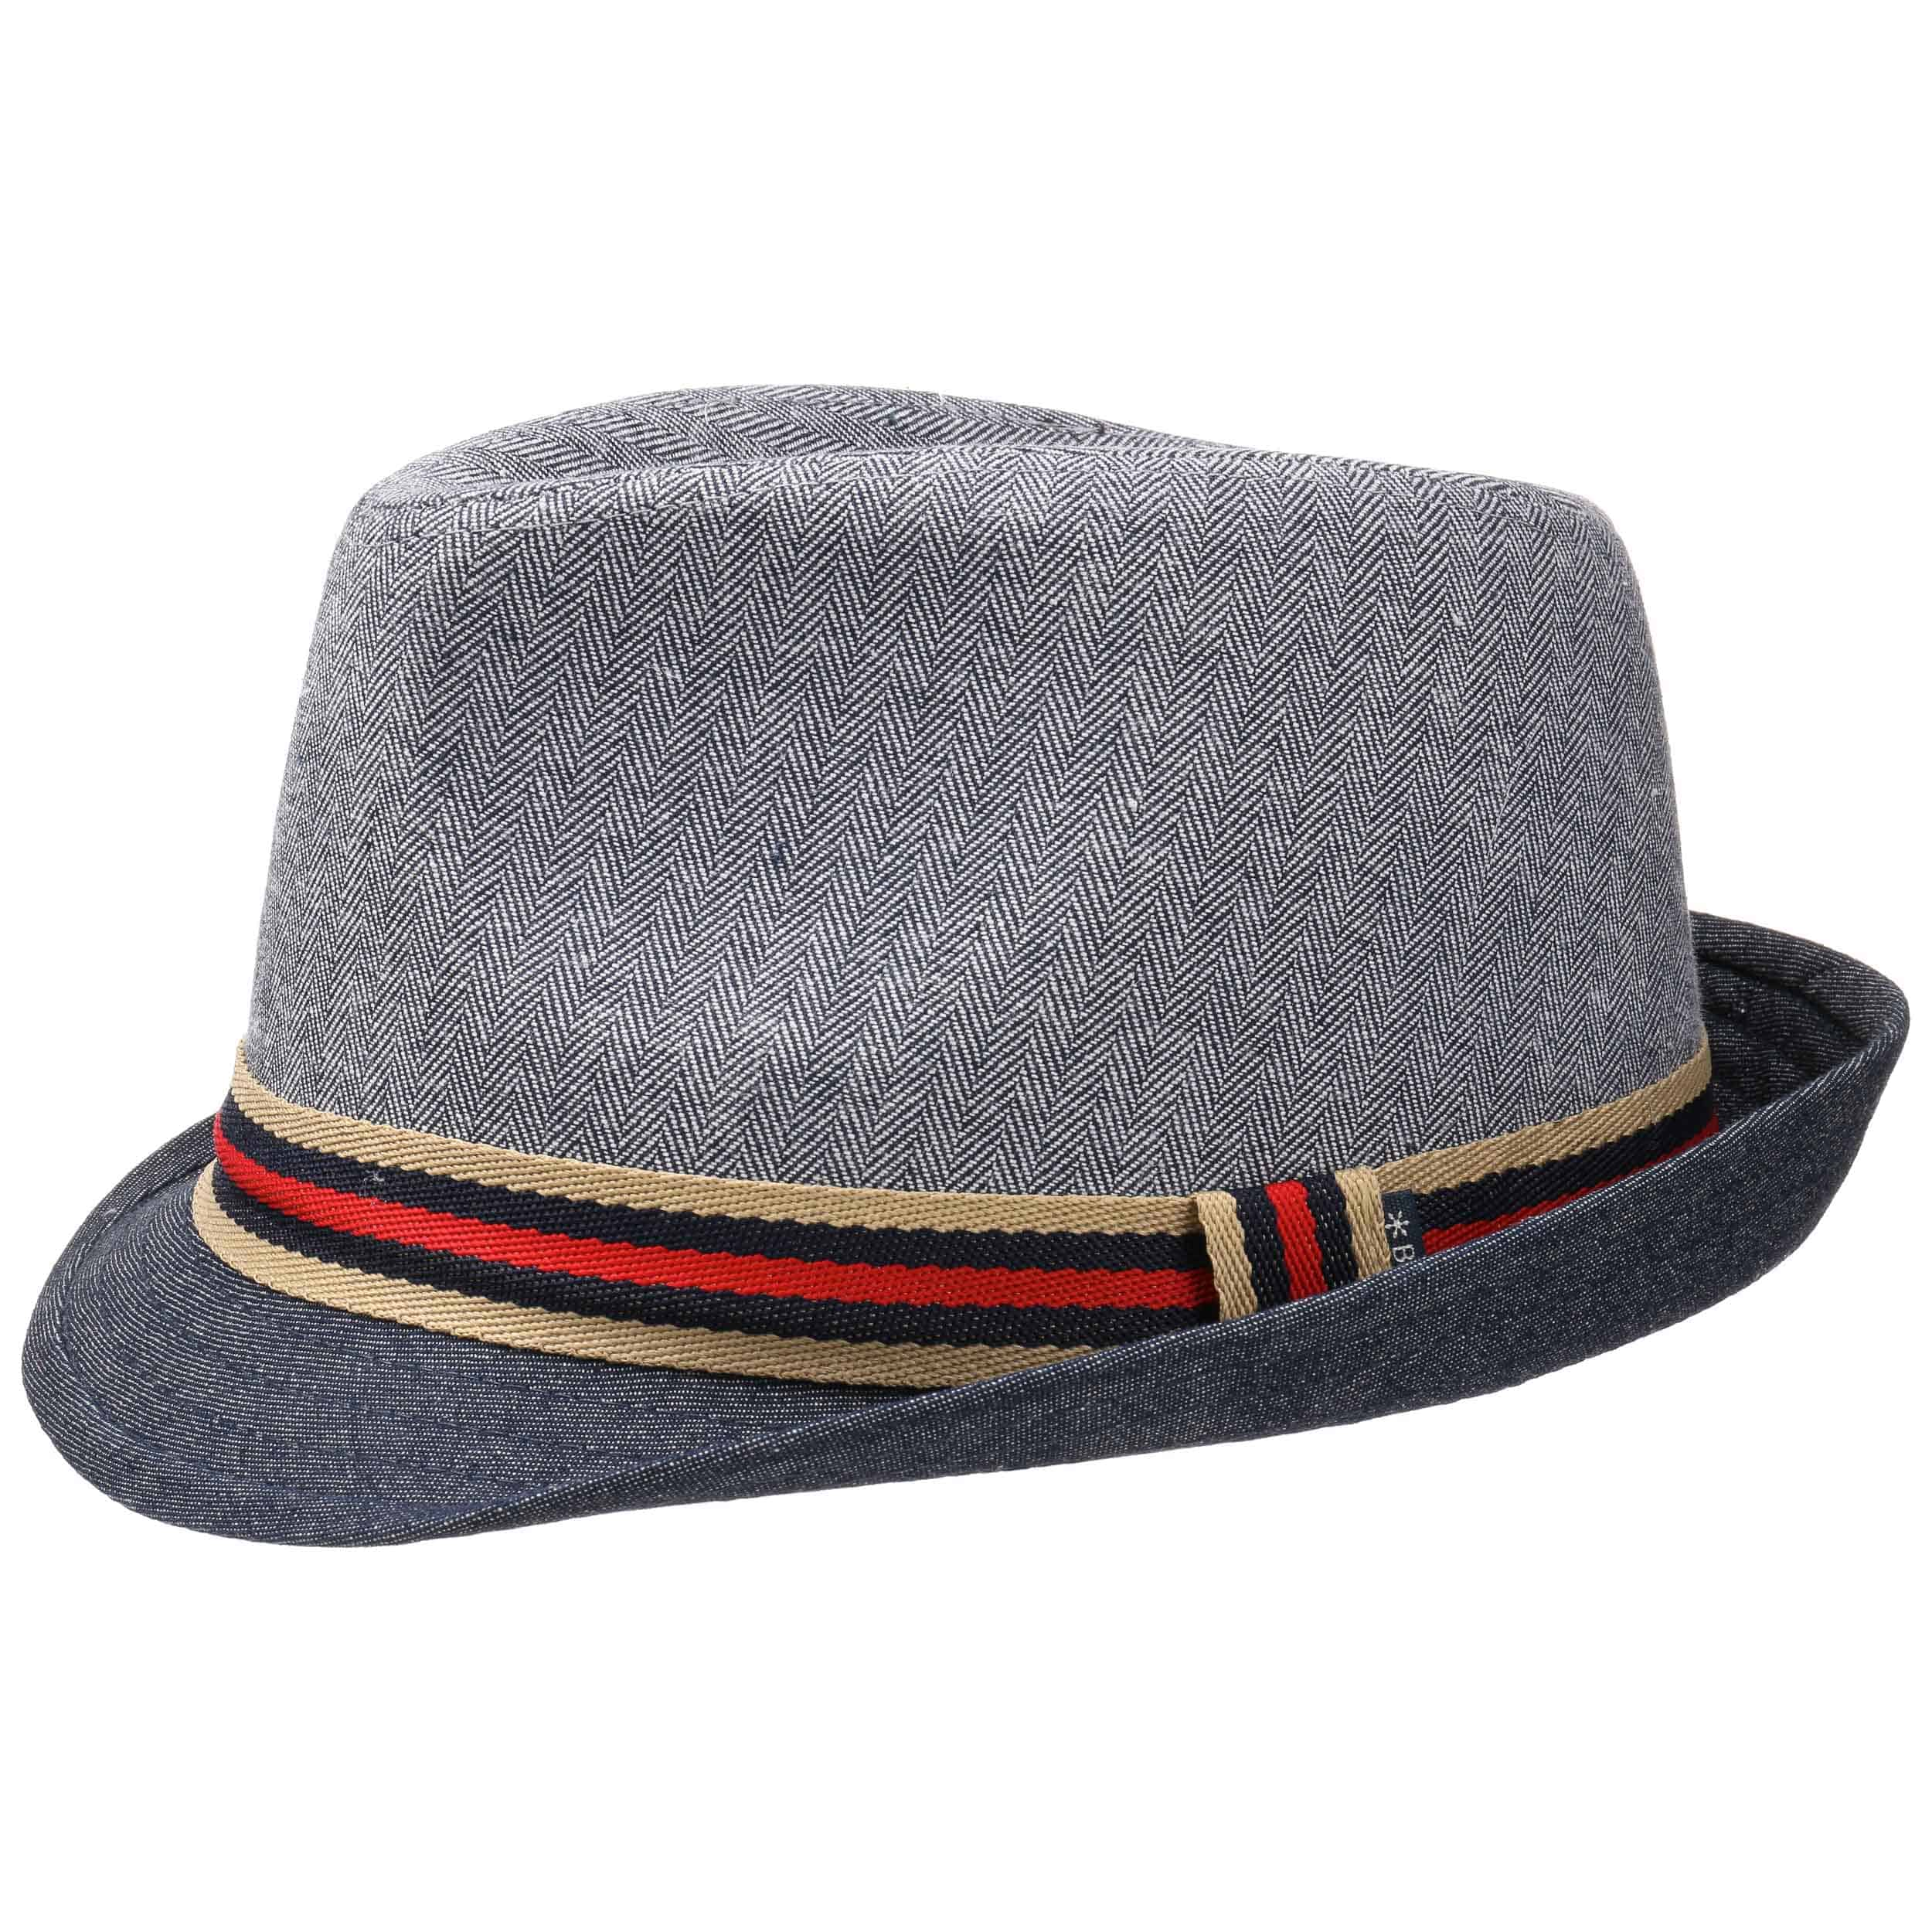 9cf5eb17b8be3 ... Canza Denim Trilby Cloth Hat by Barts - denim 4